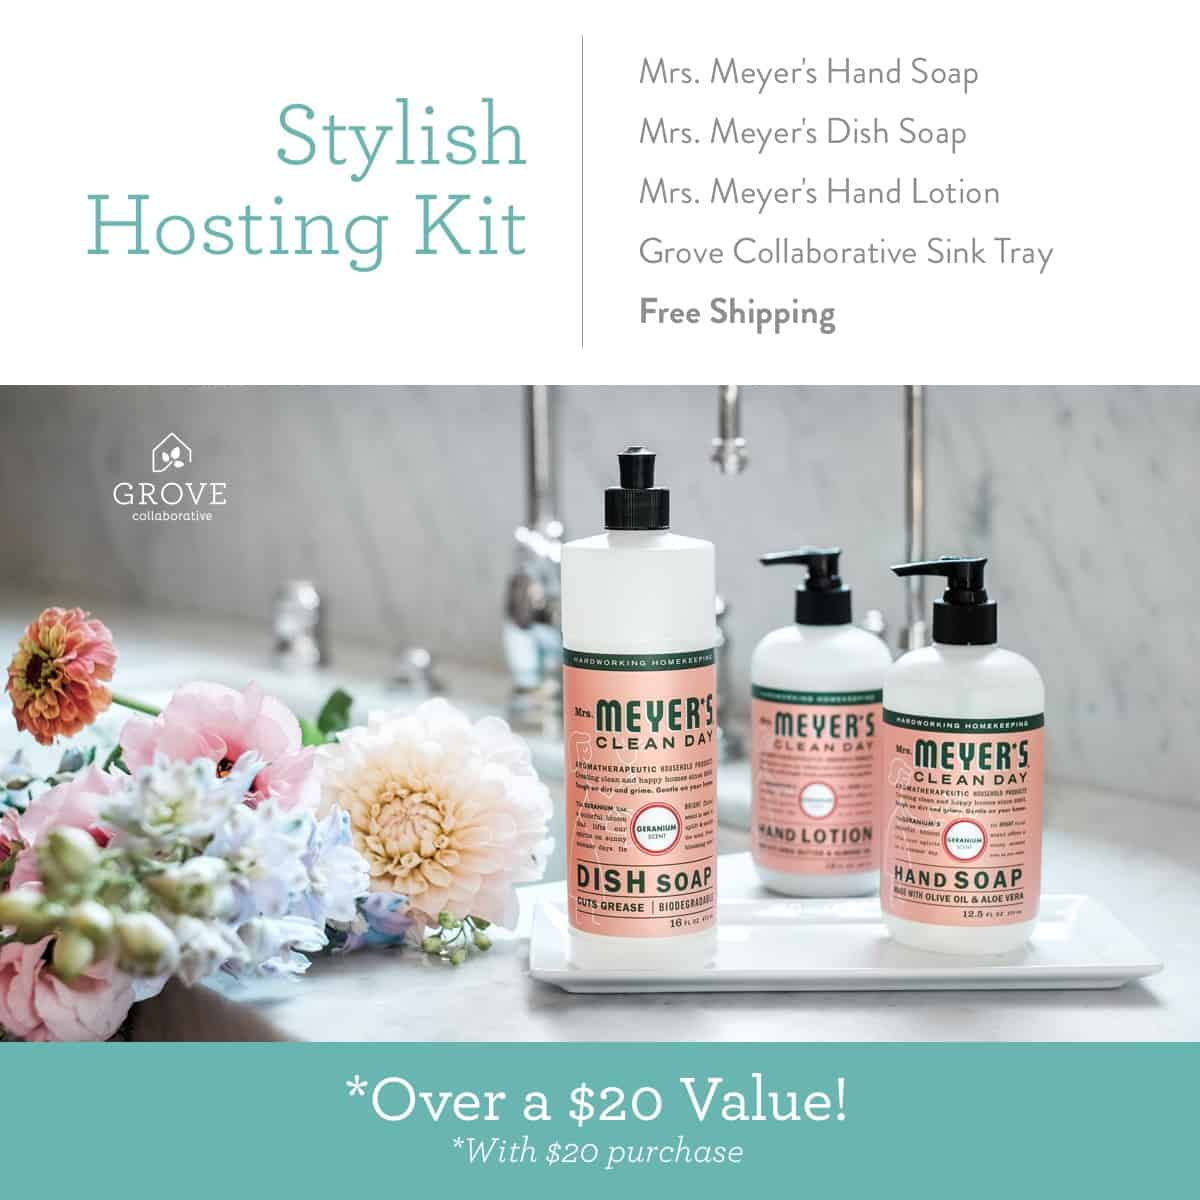 Stylish Hosting Kit special at Grove Collaborative